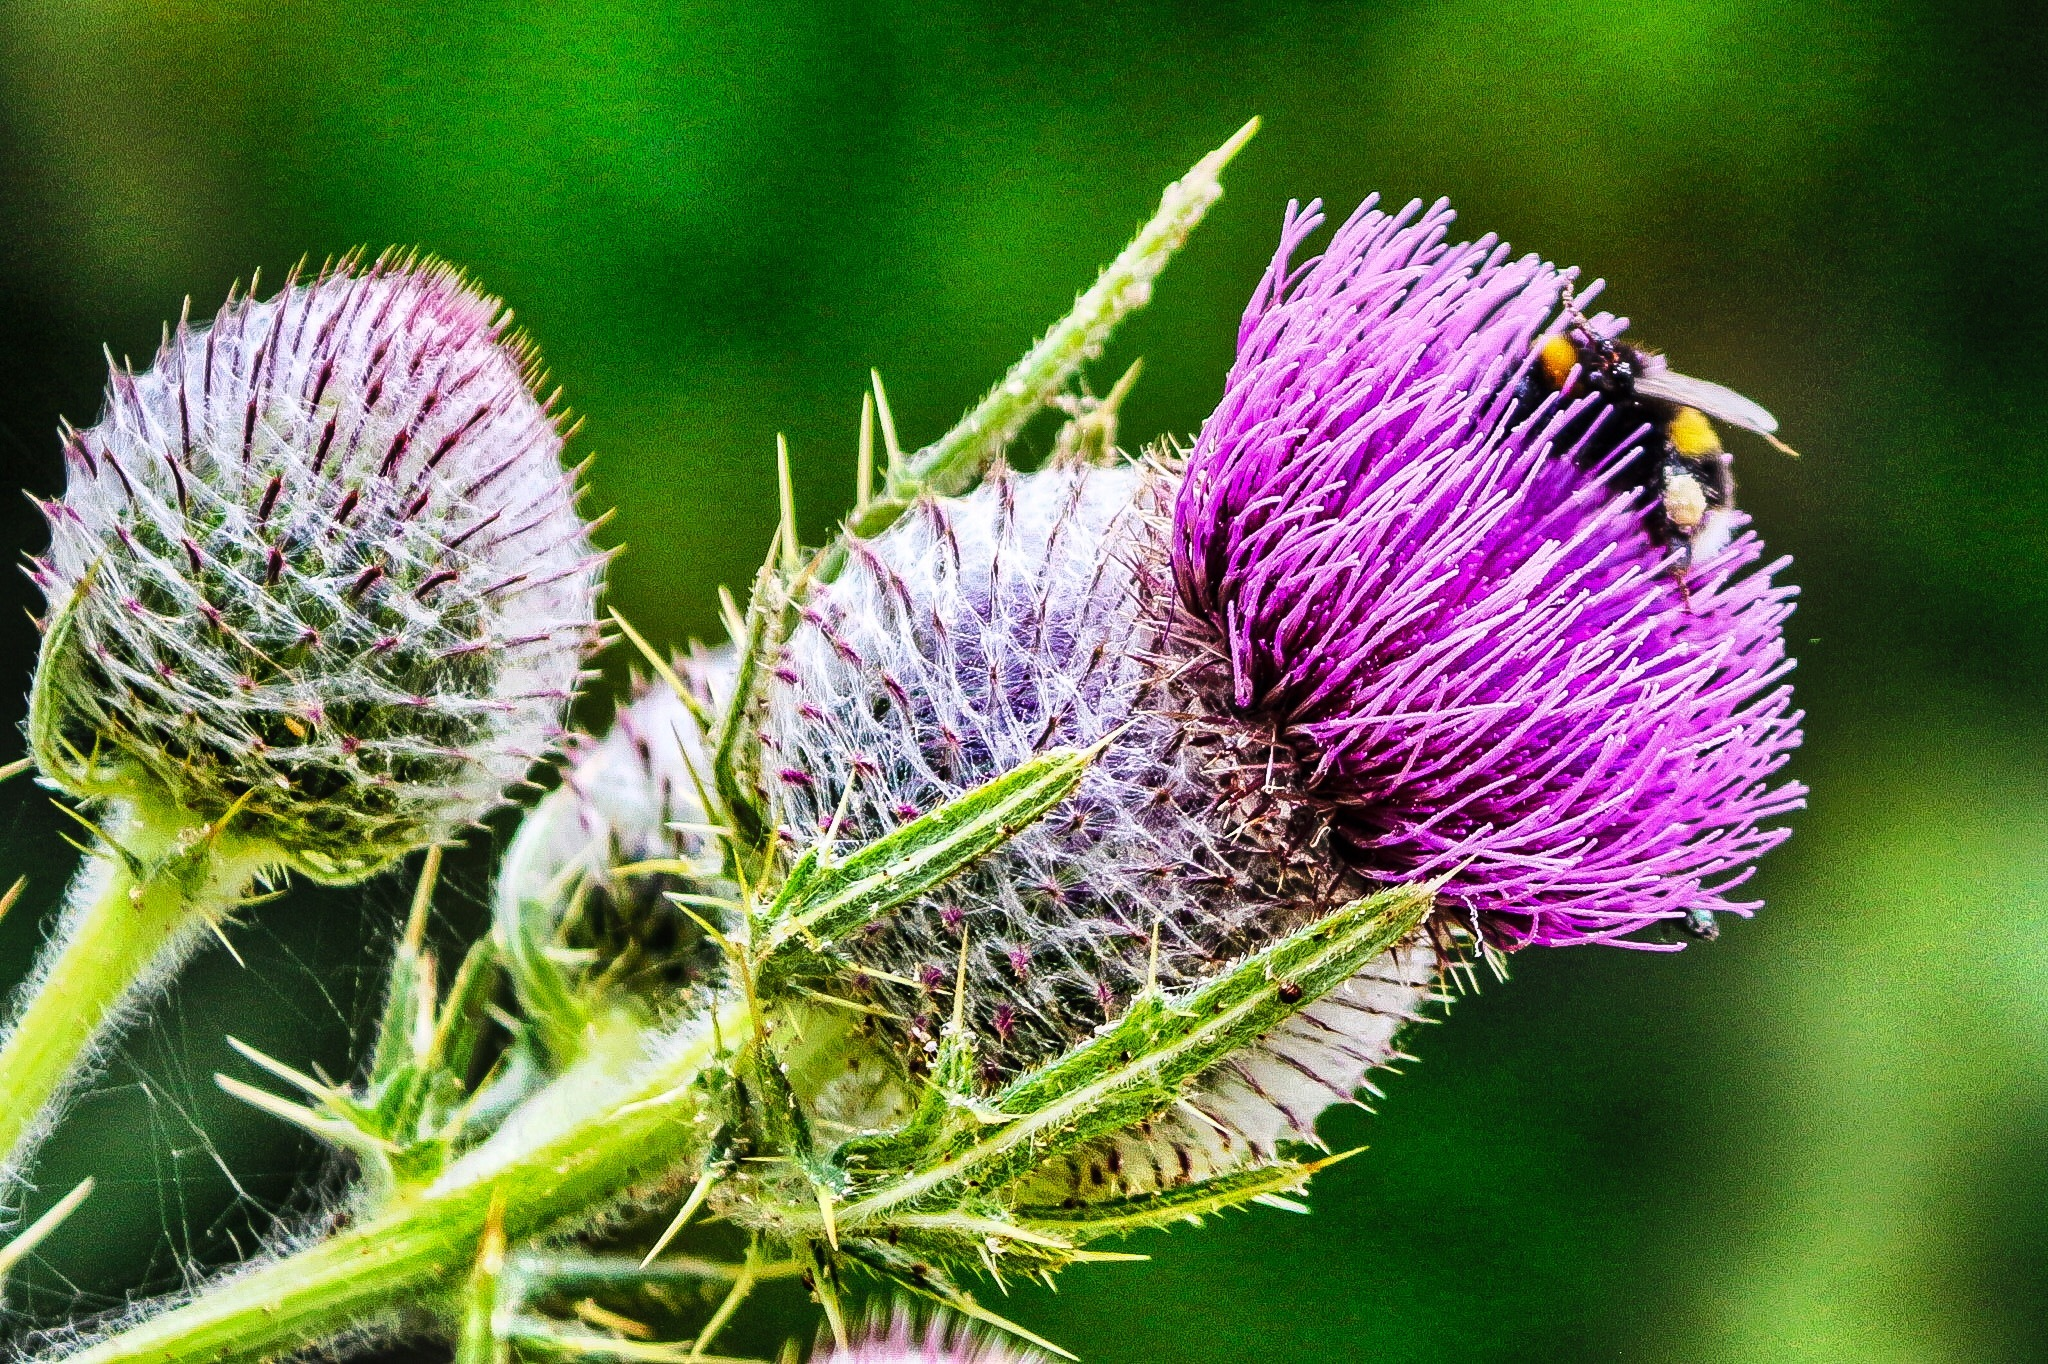 A Bee in a thistle flower by Terry Reynolds